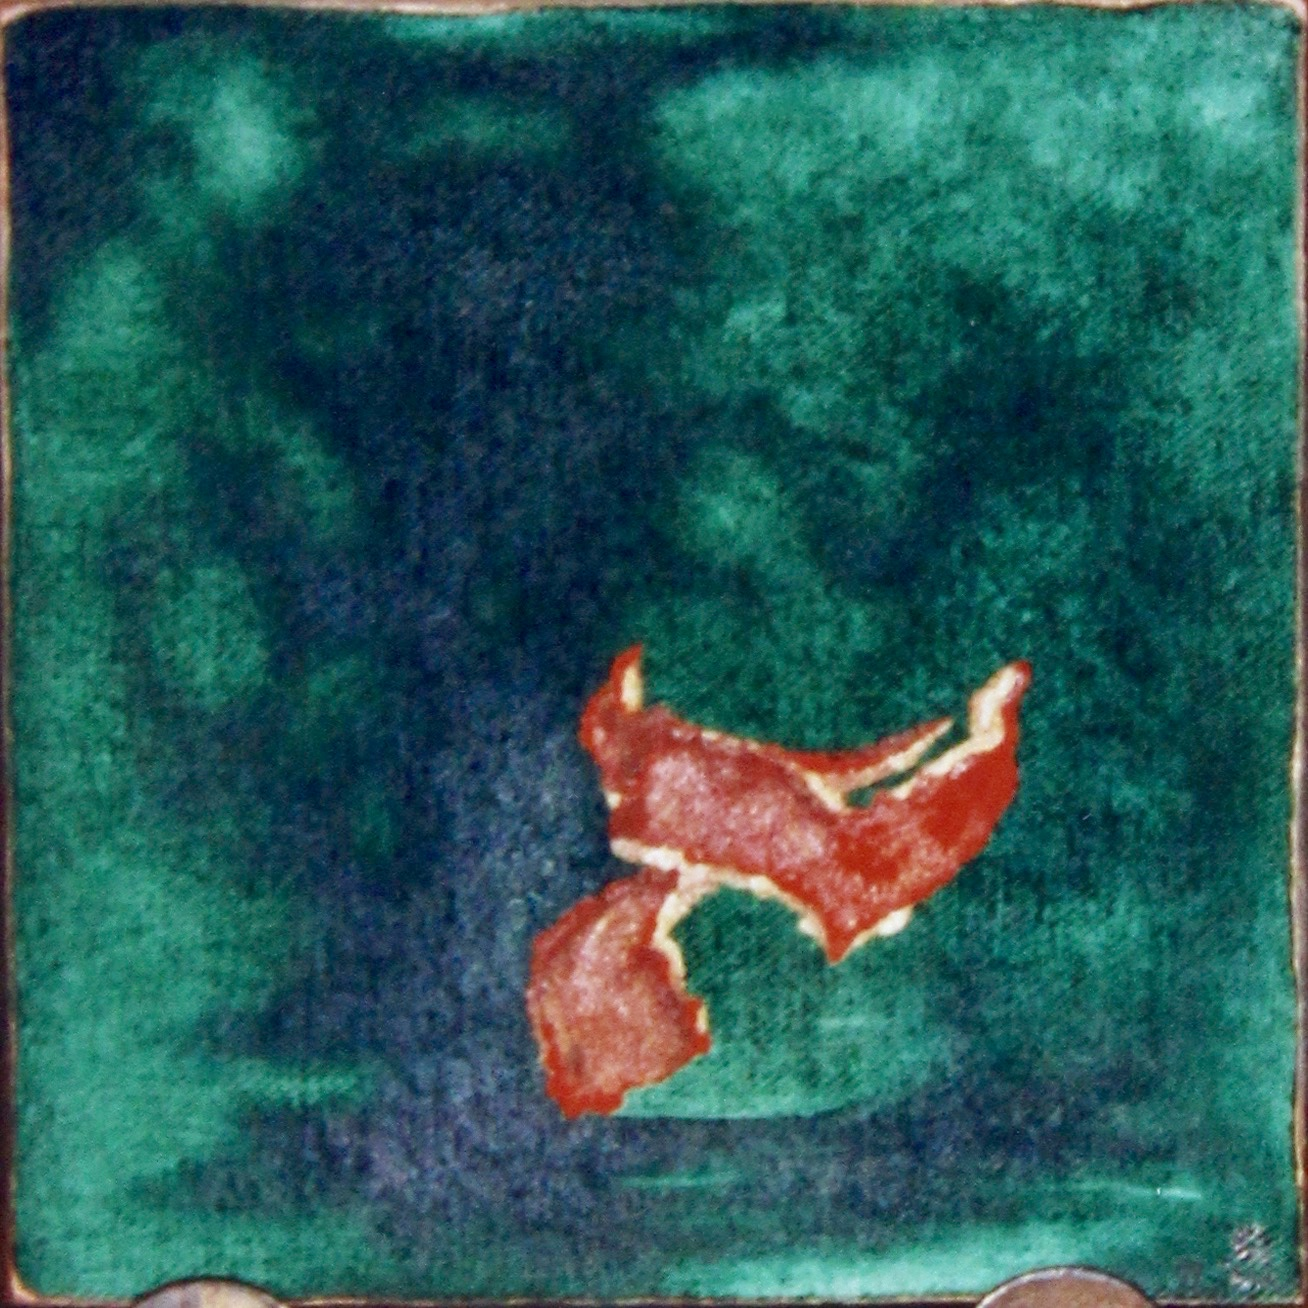 Mandalin Rind-  1997 oil on canvas 30cm x 30cm (sold)